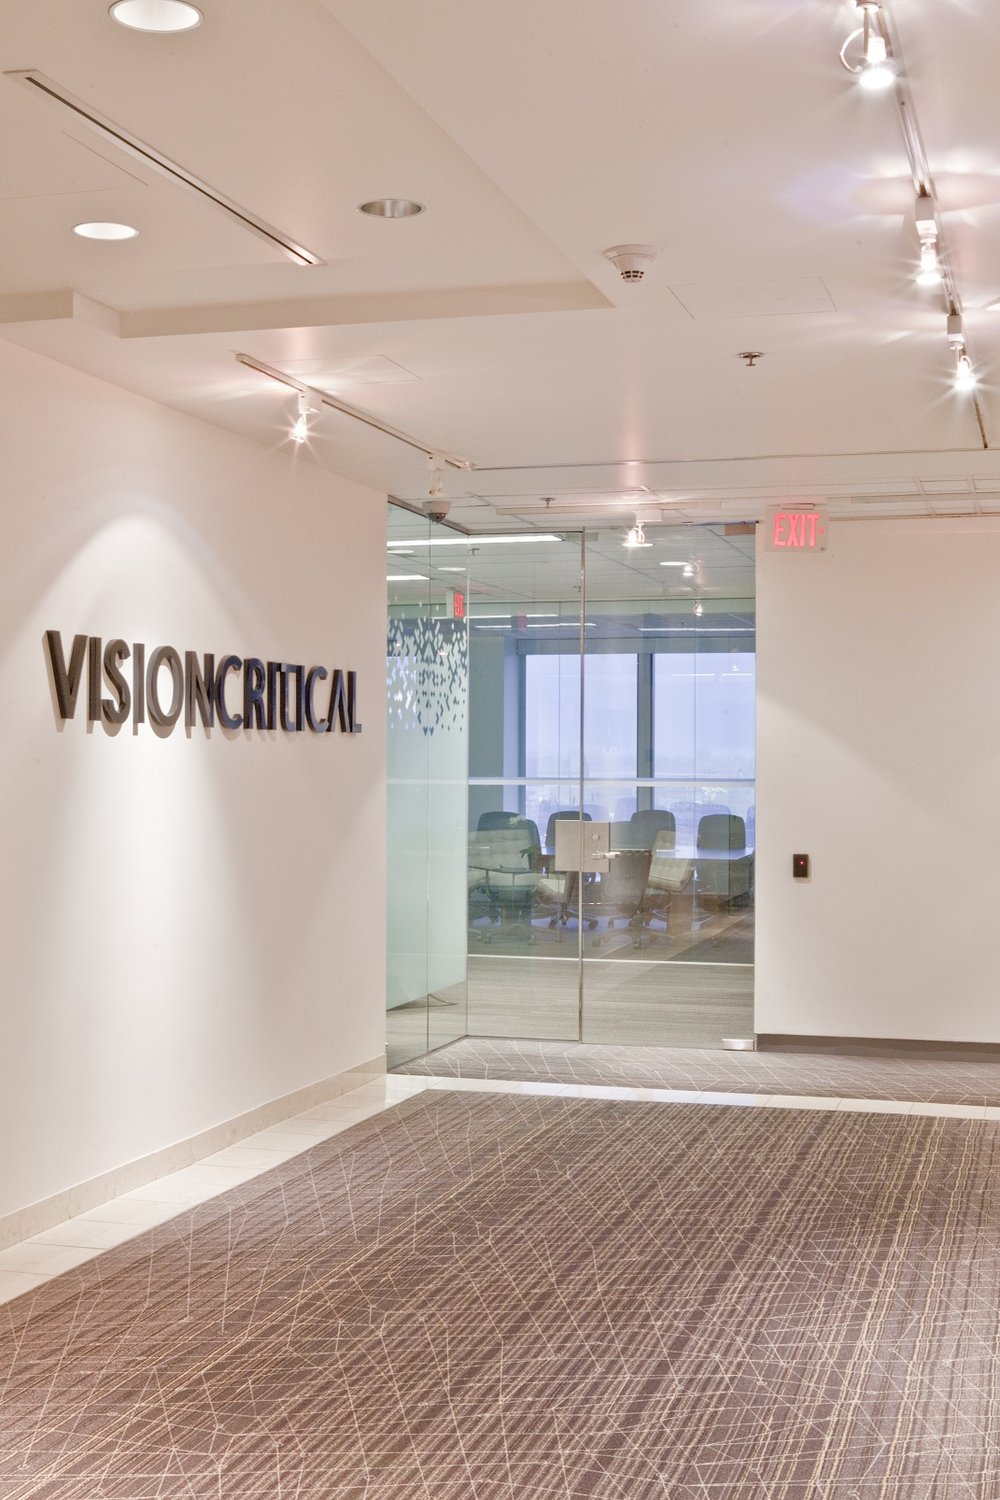 Vision Critical    Size:   40,000 Sq. Ft.   Completed:   2010   Services Rendered:   Interior Design, Construction Management